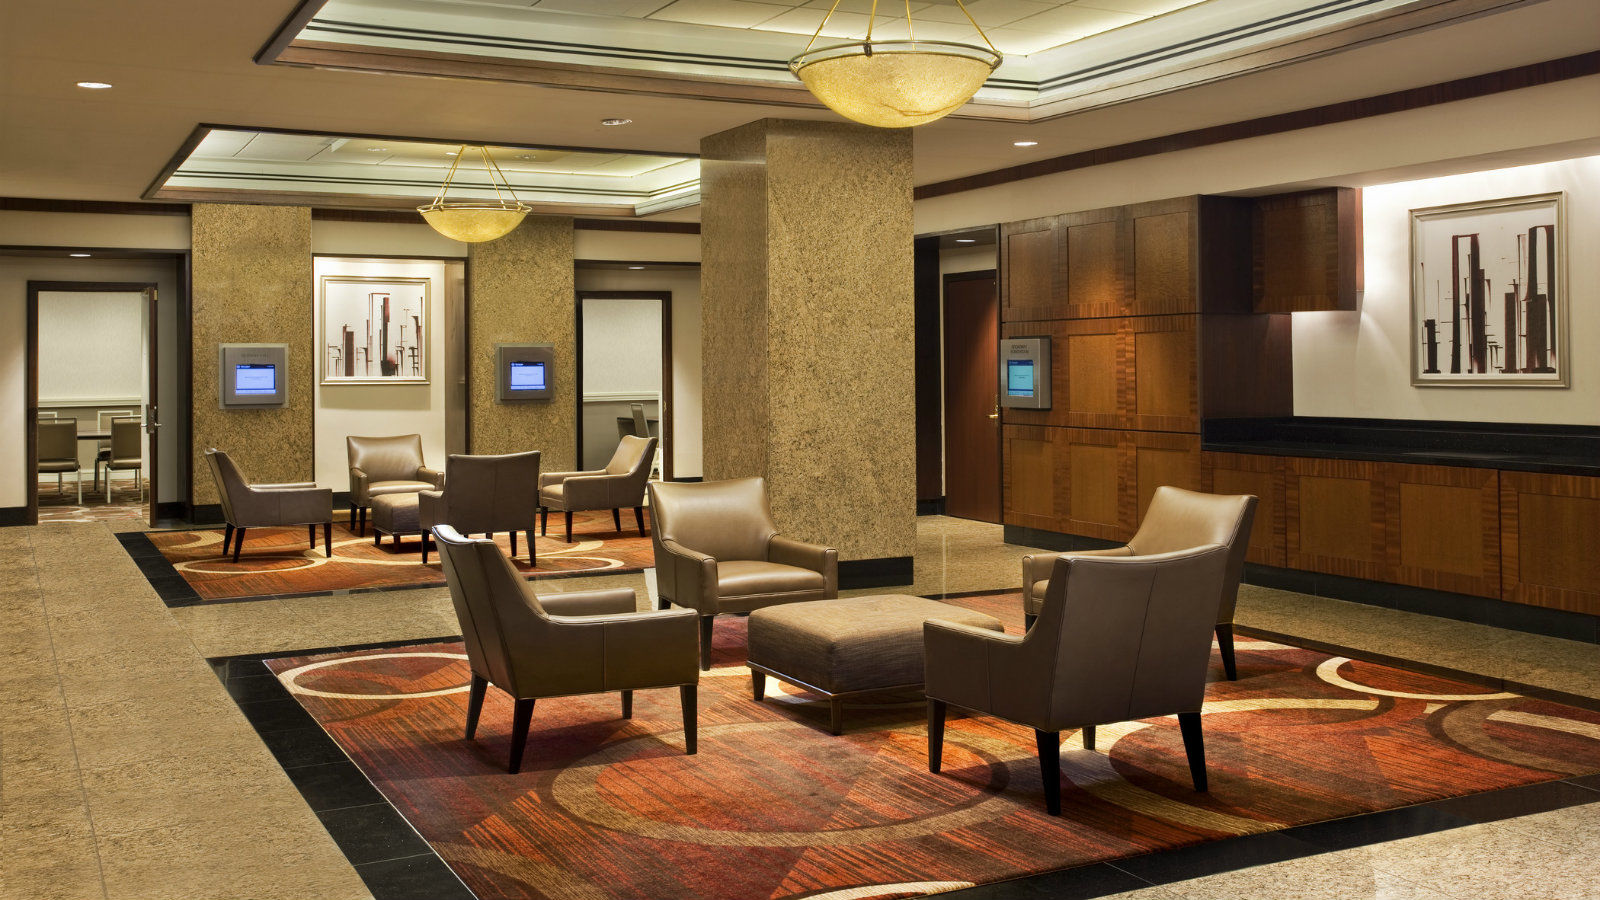 Sheraton New York Times Square Hotel - Executive Conference Center Lounge Area